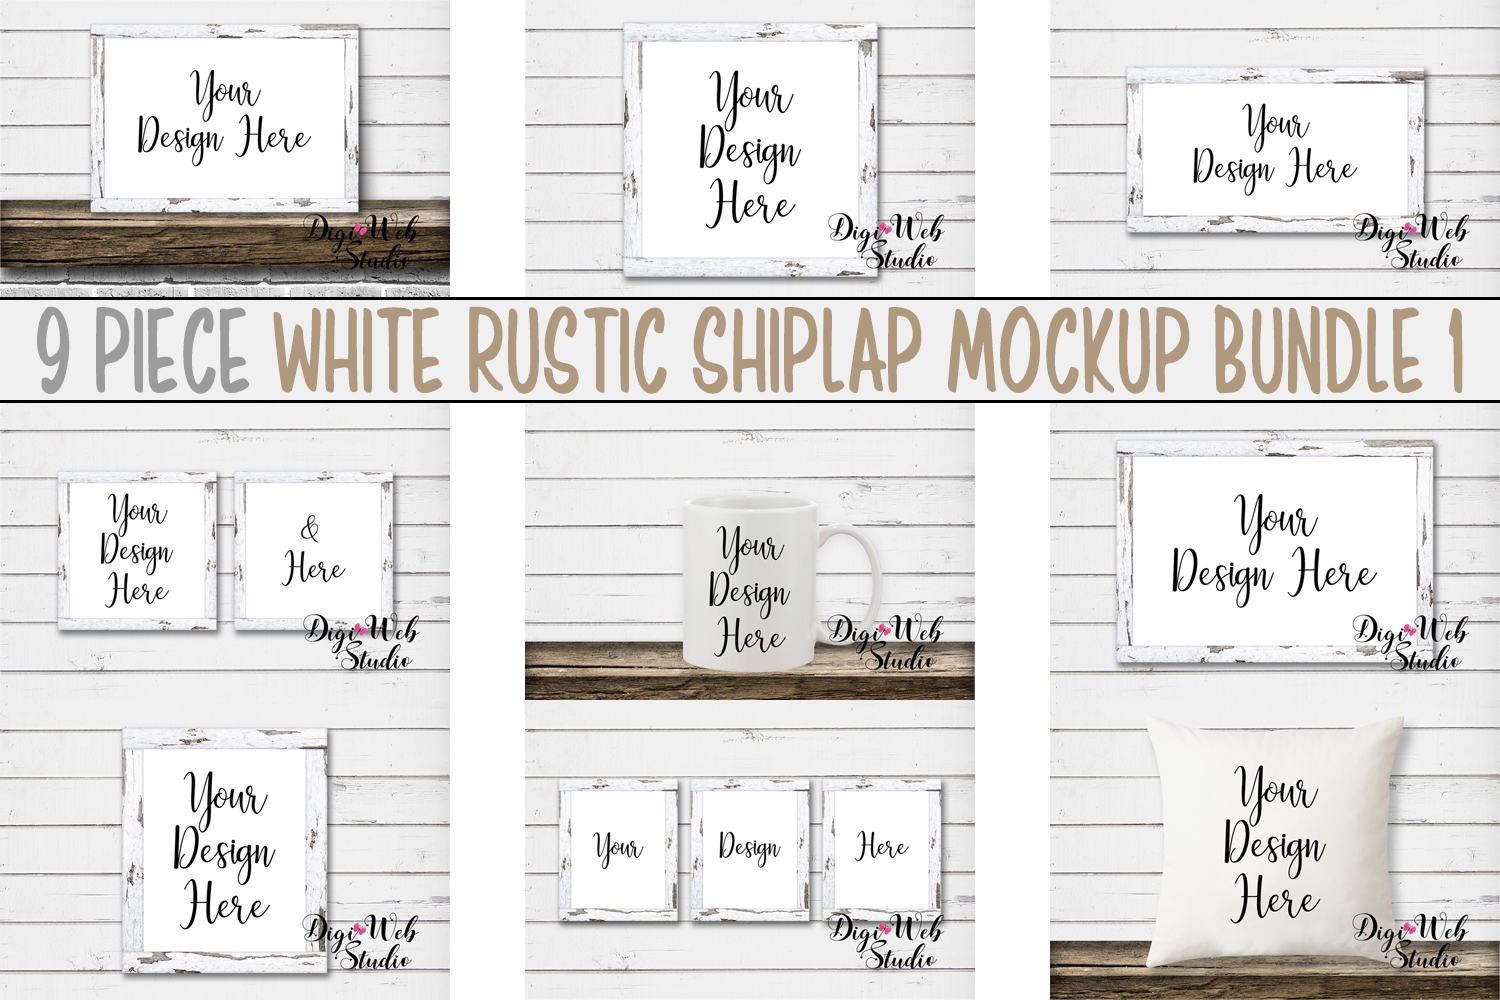 Mockup Bundle -White Rustic Shiplap Wood Signs, Pillow & Mug example image 1